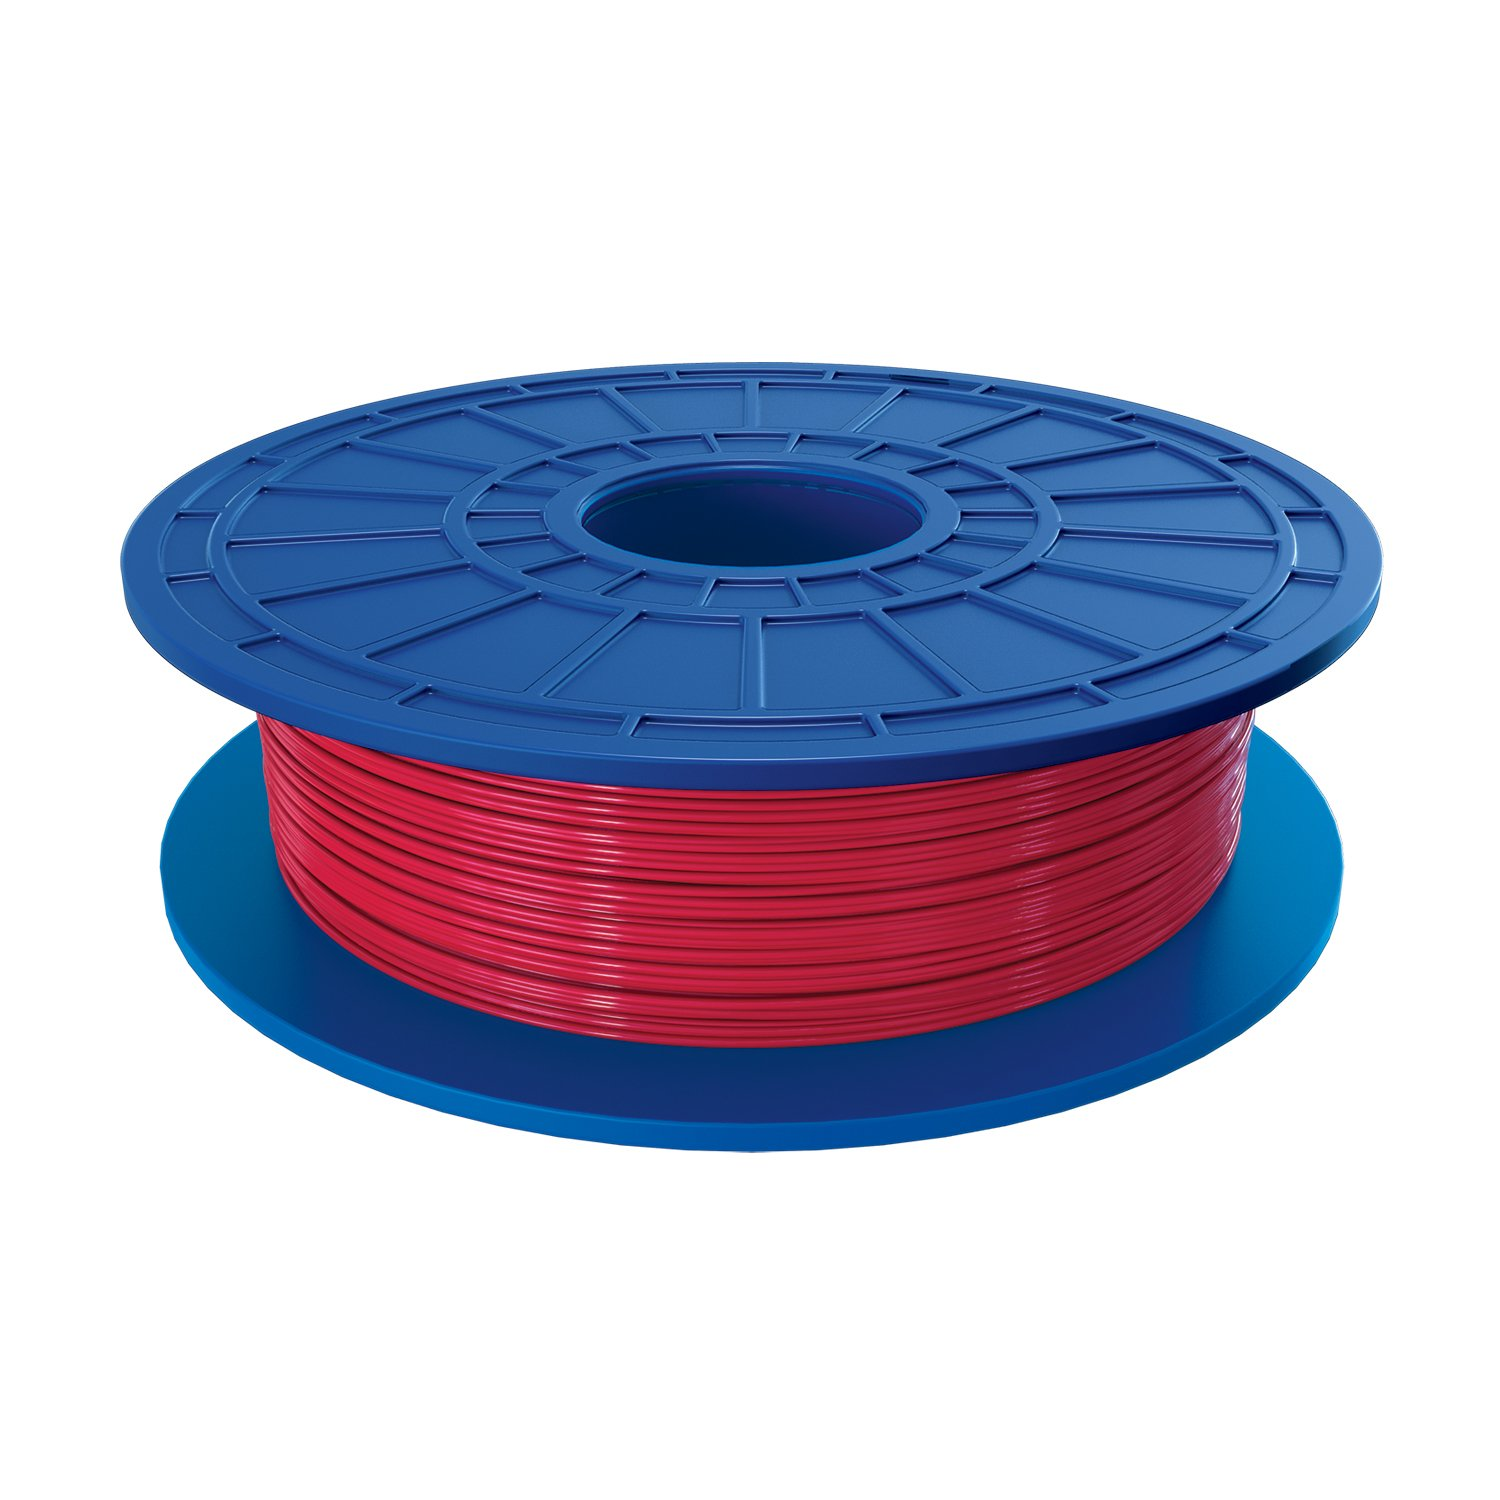 Dremel PLA 3D Printer Filament, 1.75 mm Diameter, 0.5 kg Spool Weight, Red